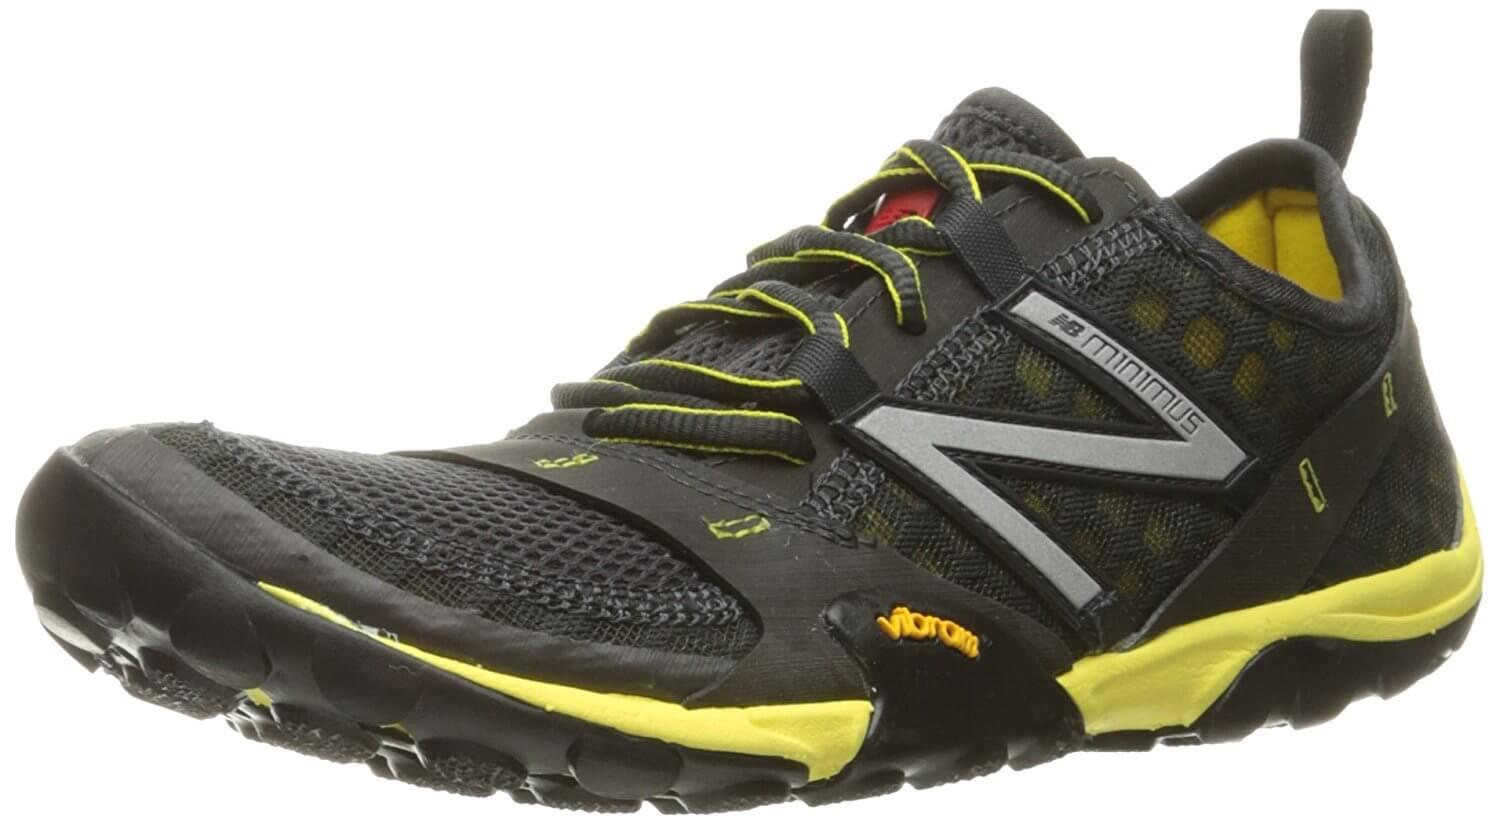 This shoe is stylish and clean, reminscent of many newer New Balance shoes.